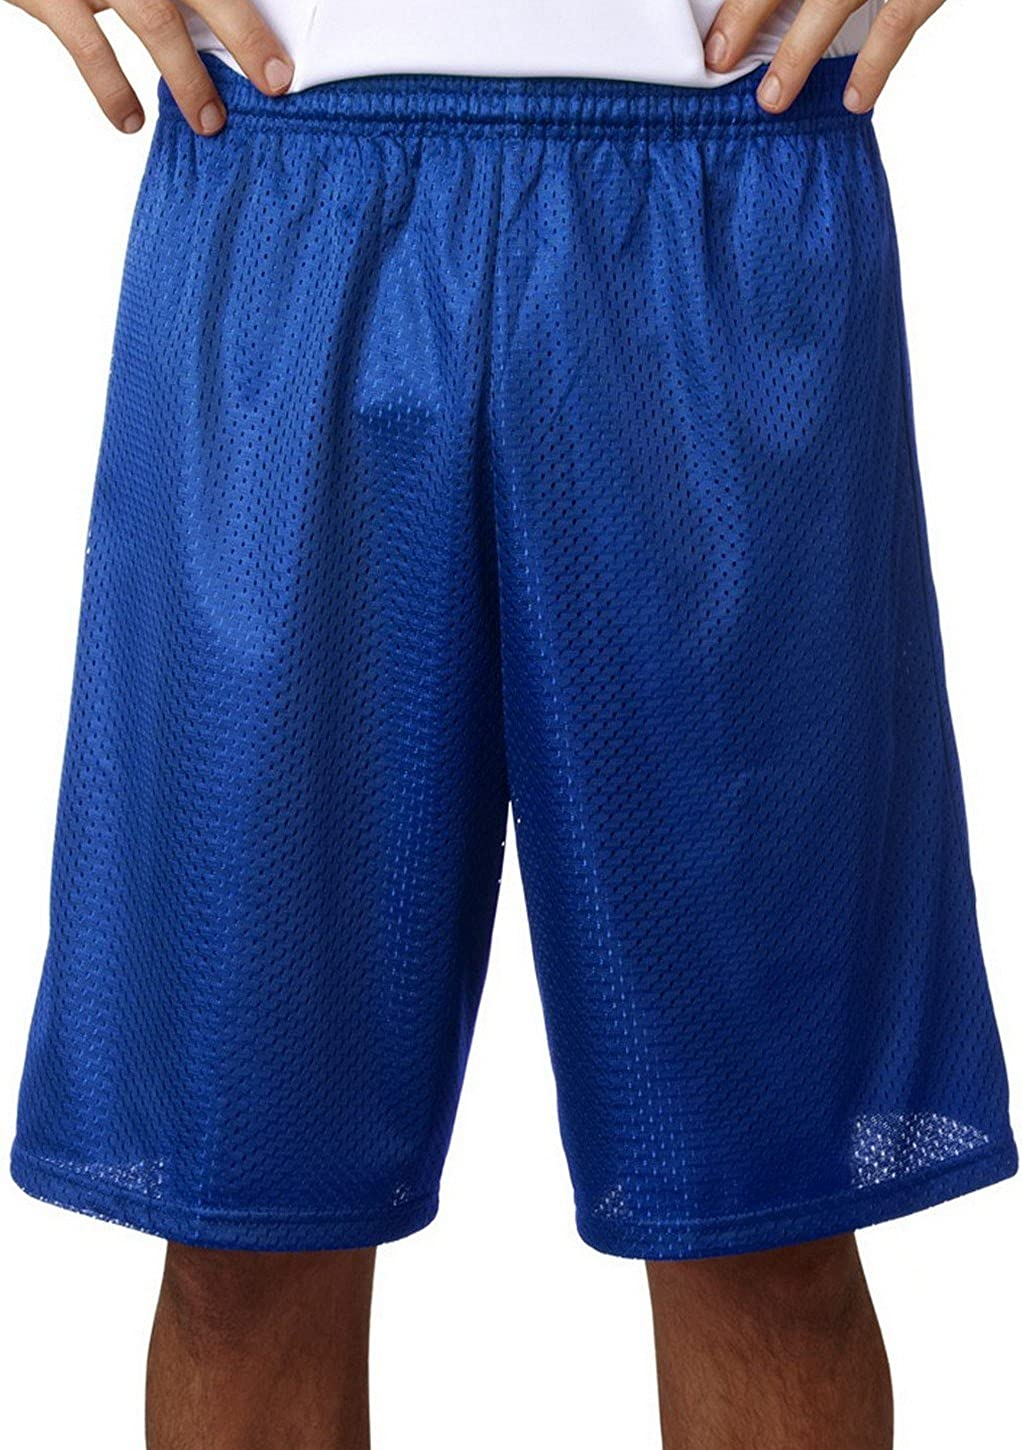 A4 A4/Â/ N5296 Adult Tricot-Lined 9 Mesh Shorts Royal Large